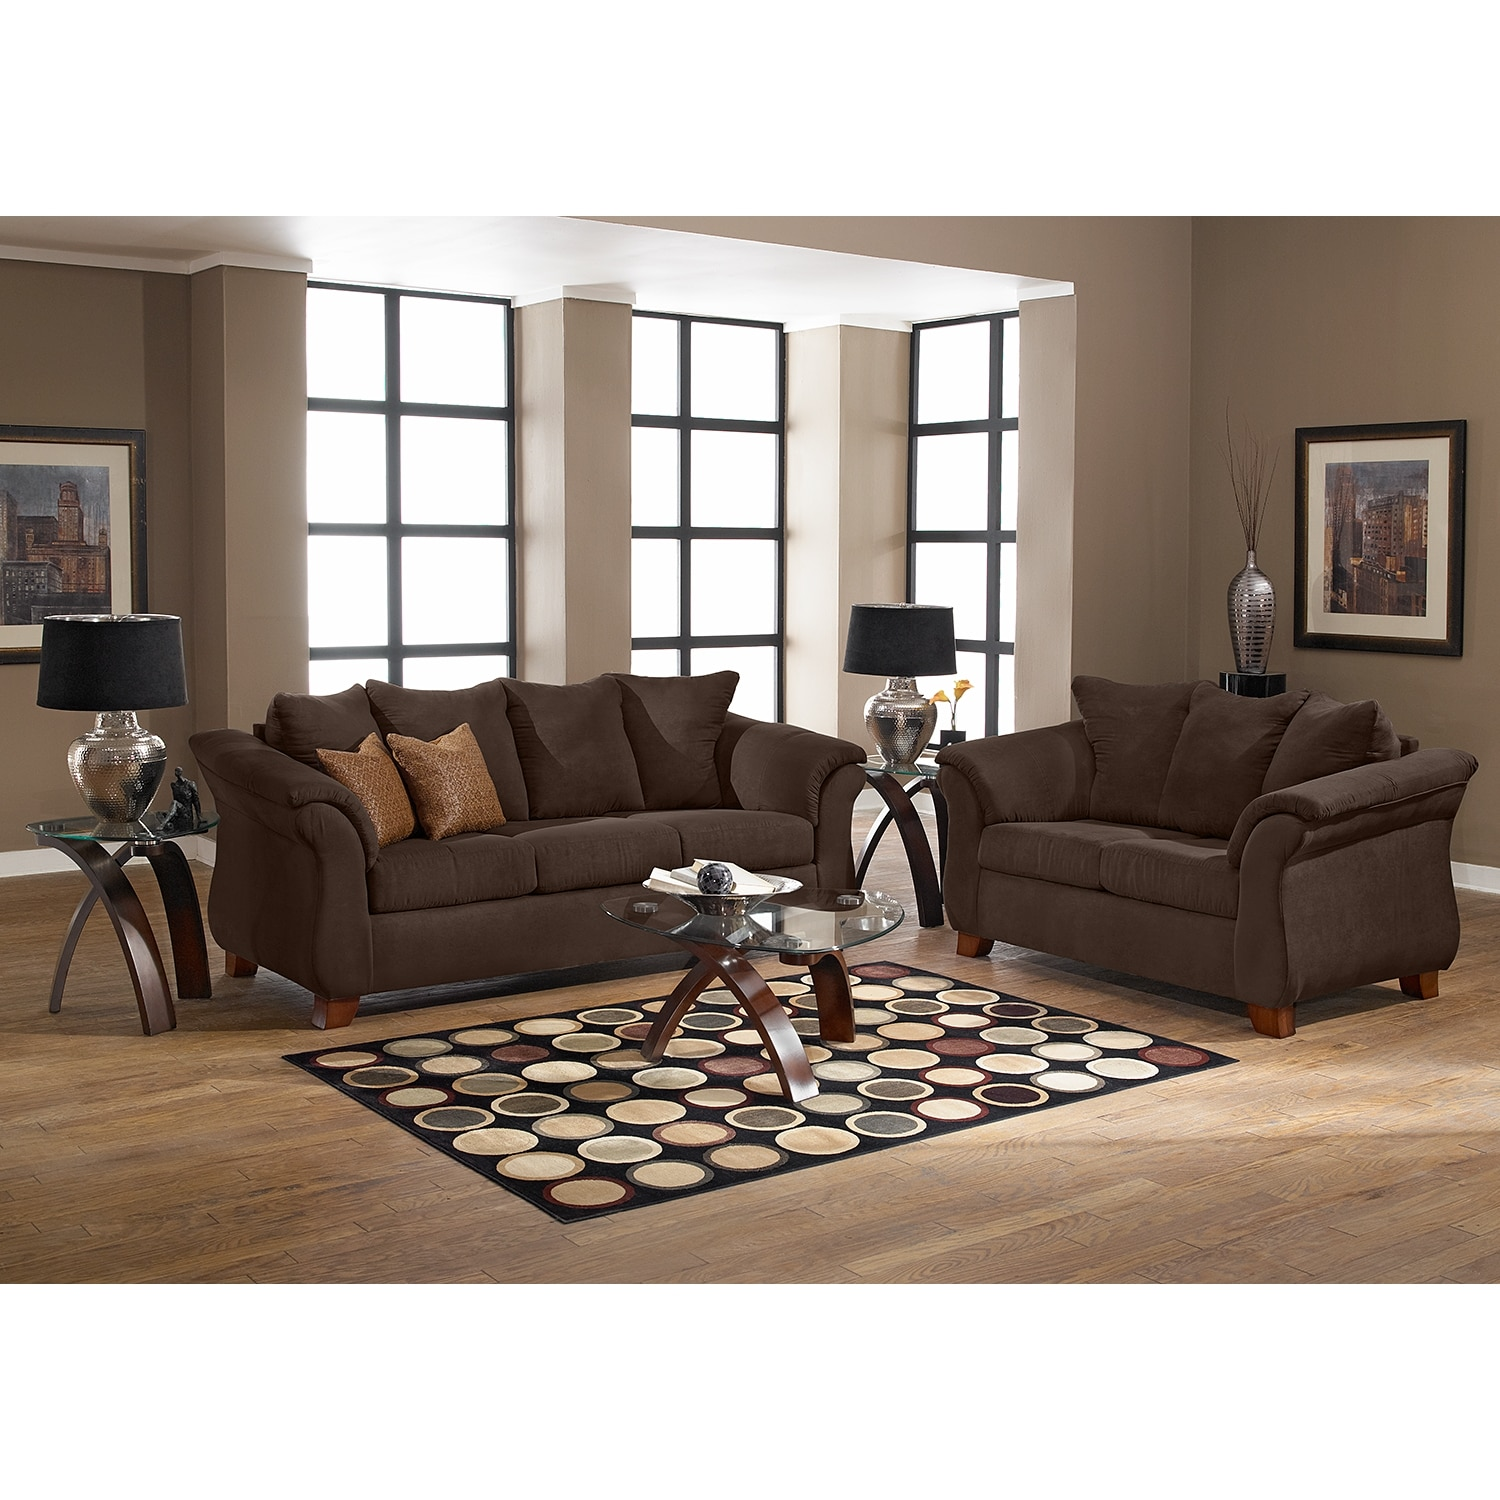 Adrian sofa and loveseat set chocolate value city furniture